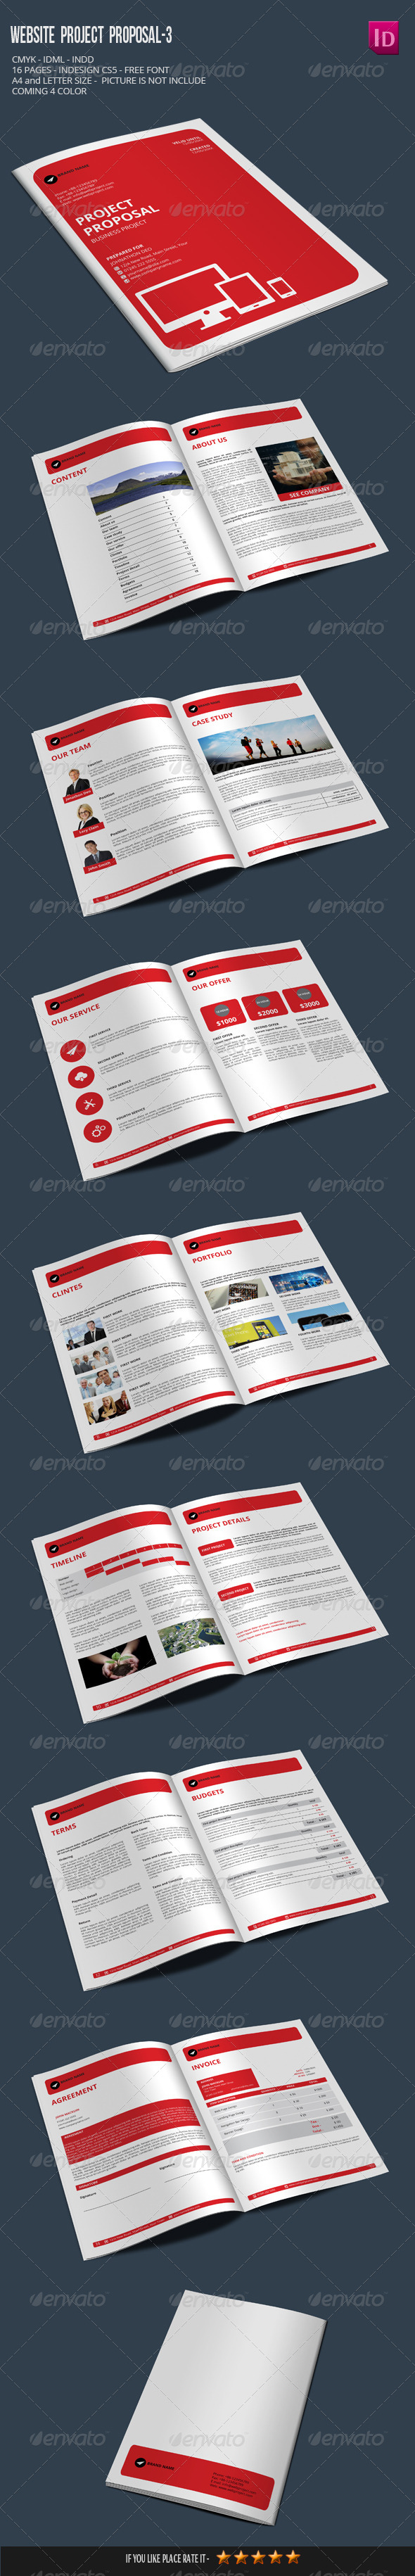 GraphicRiver Website Project Proposal-3 7506612